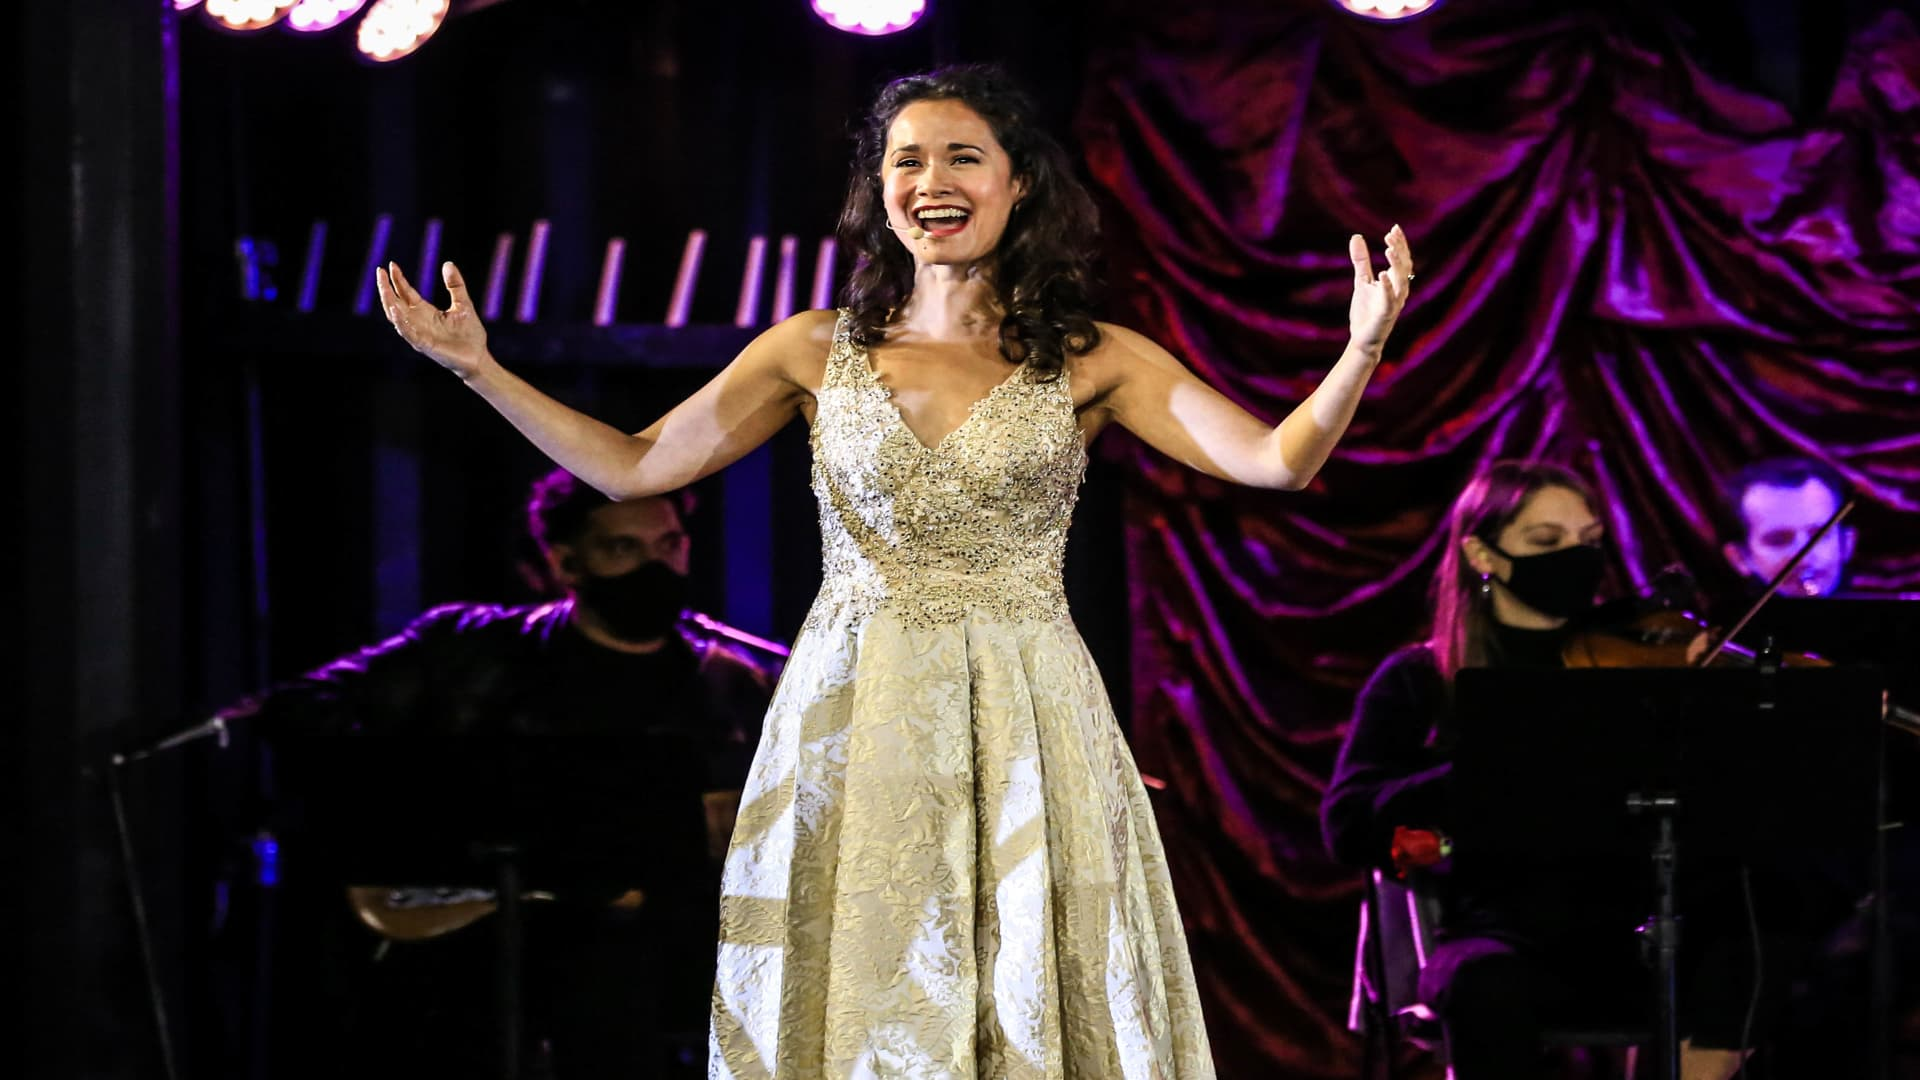 Ali Ewoldt performs in a drive-thru production of The Phantom of the Opera in Queens, New York.